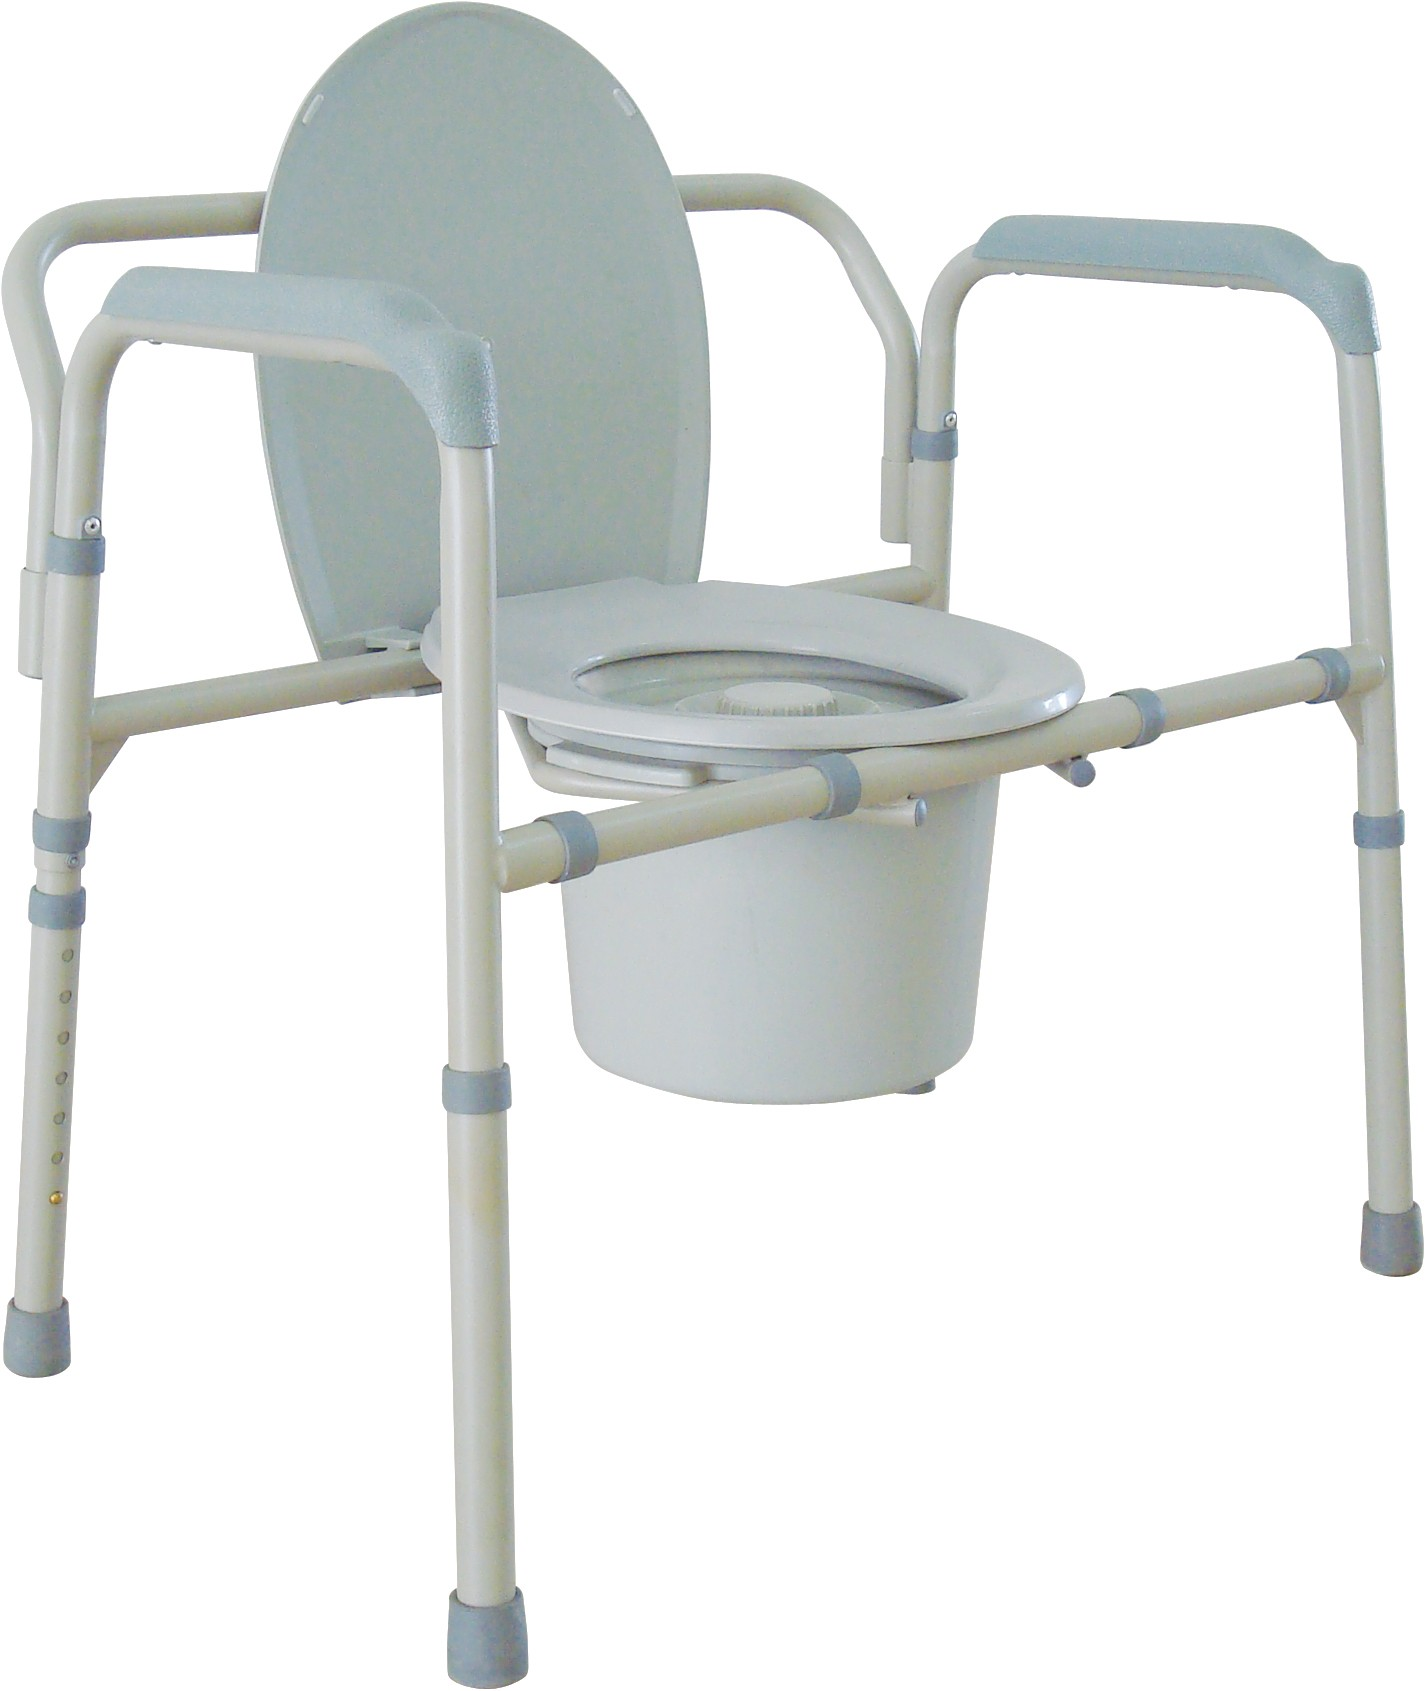 Bariatic Steel Commode